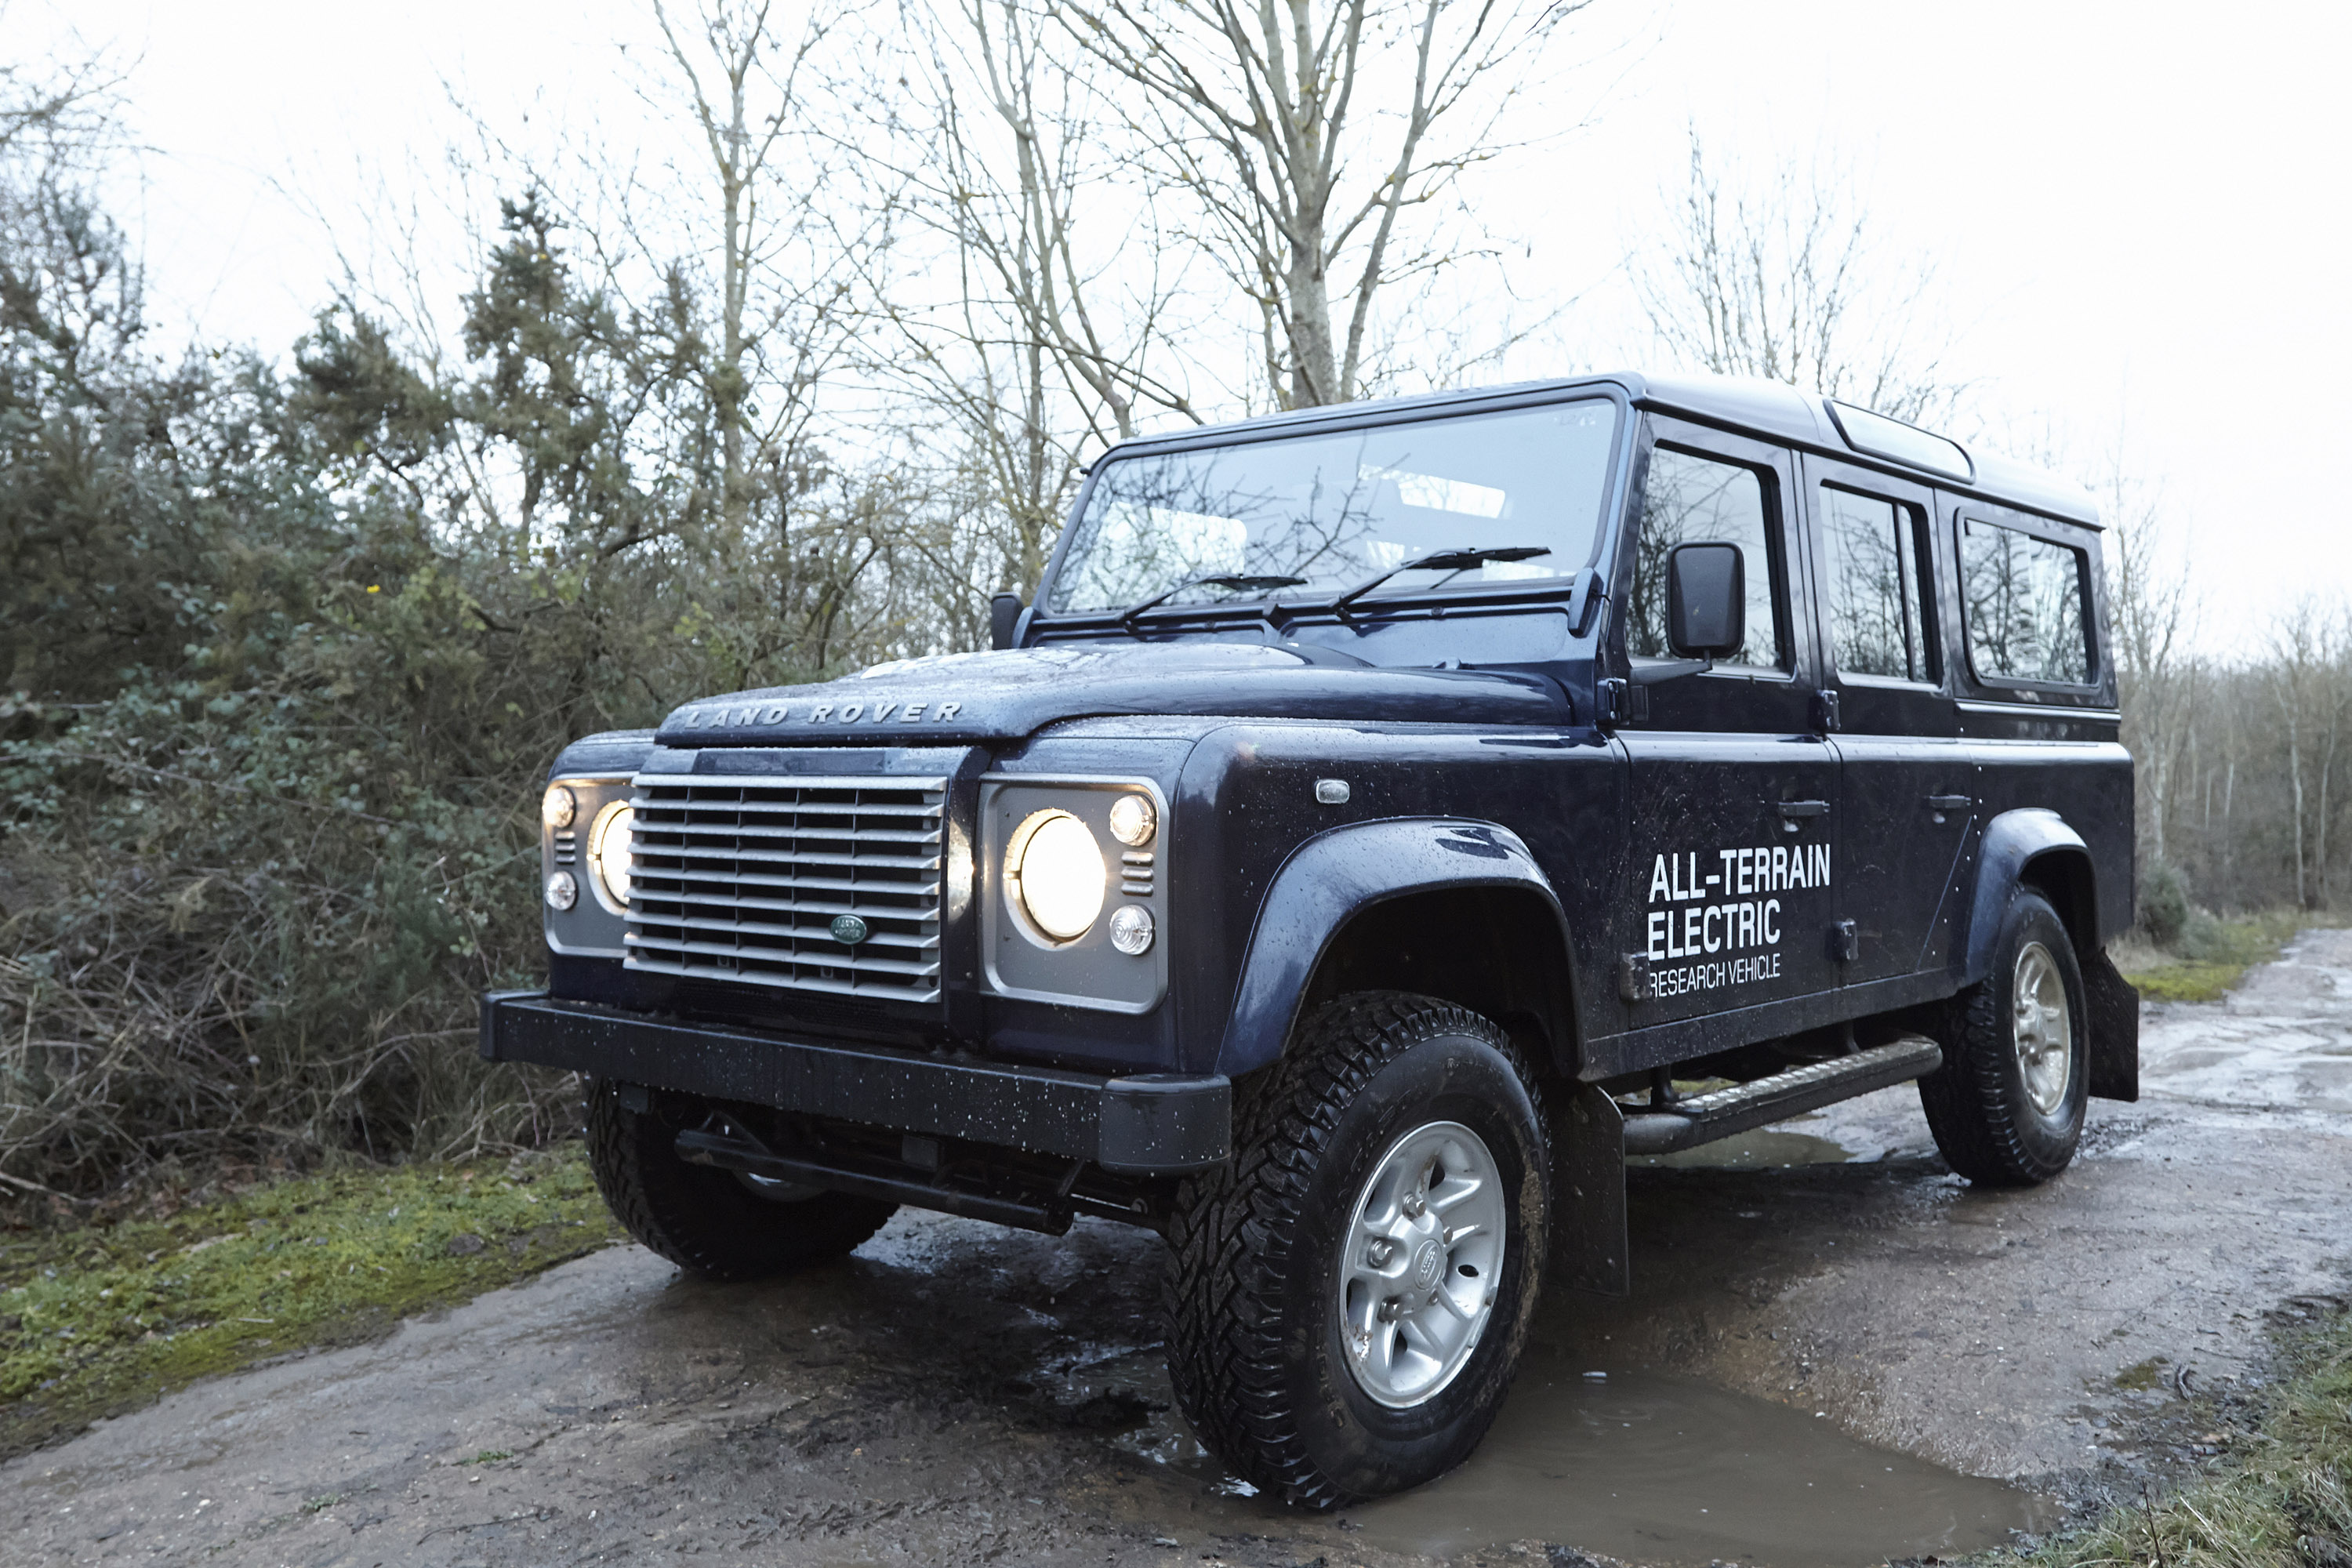 Land Rover Defender Electric Concept photo #2